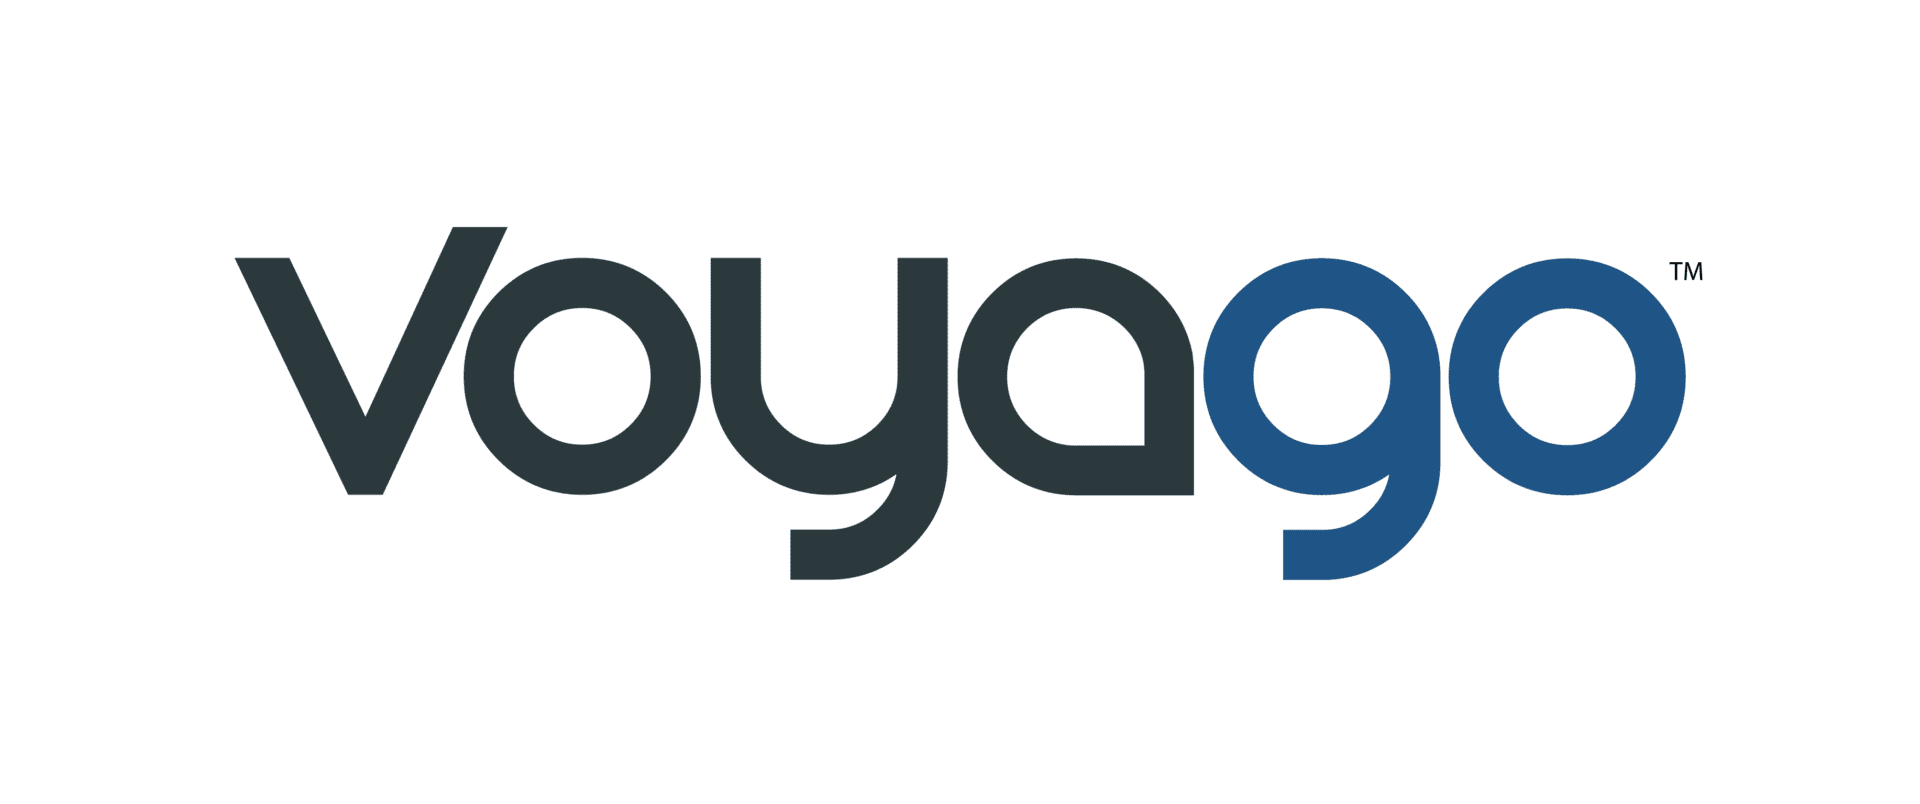 Voyago_Fleet_LogoType-01